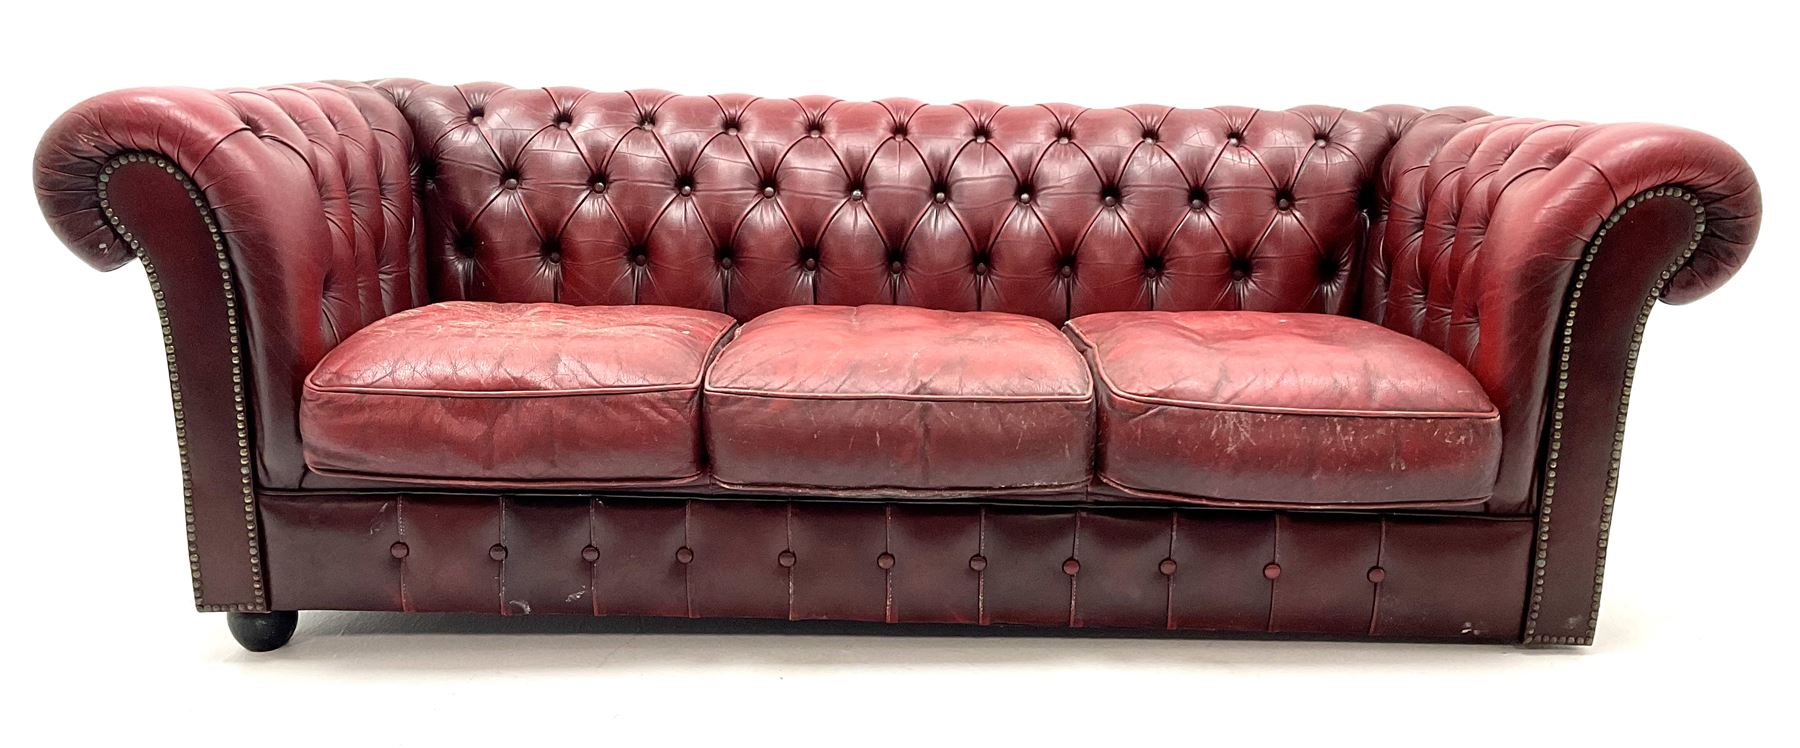 Three seat chesterfield sofa upholstered in deep buttoned ox blood studded leather